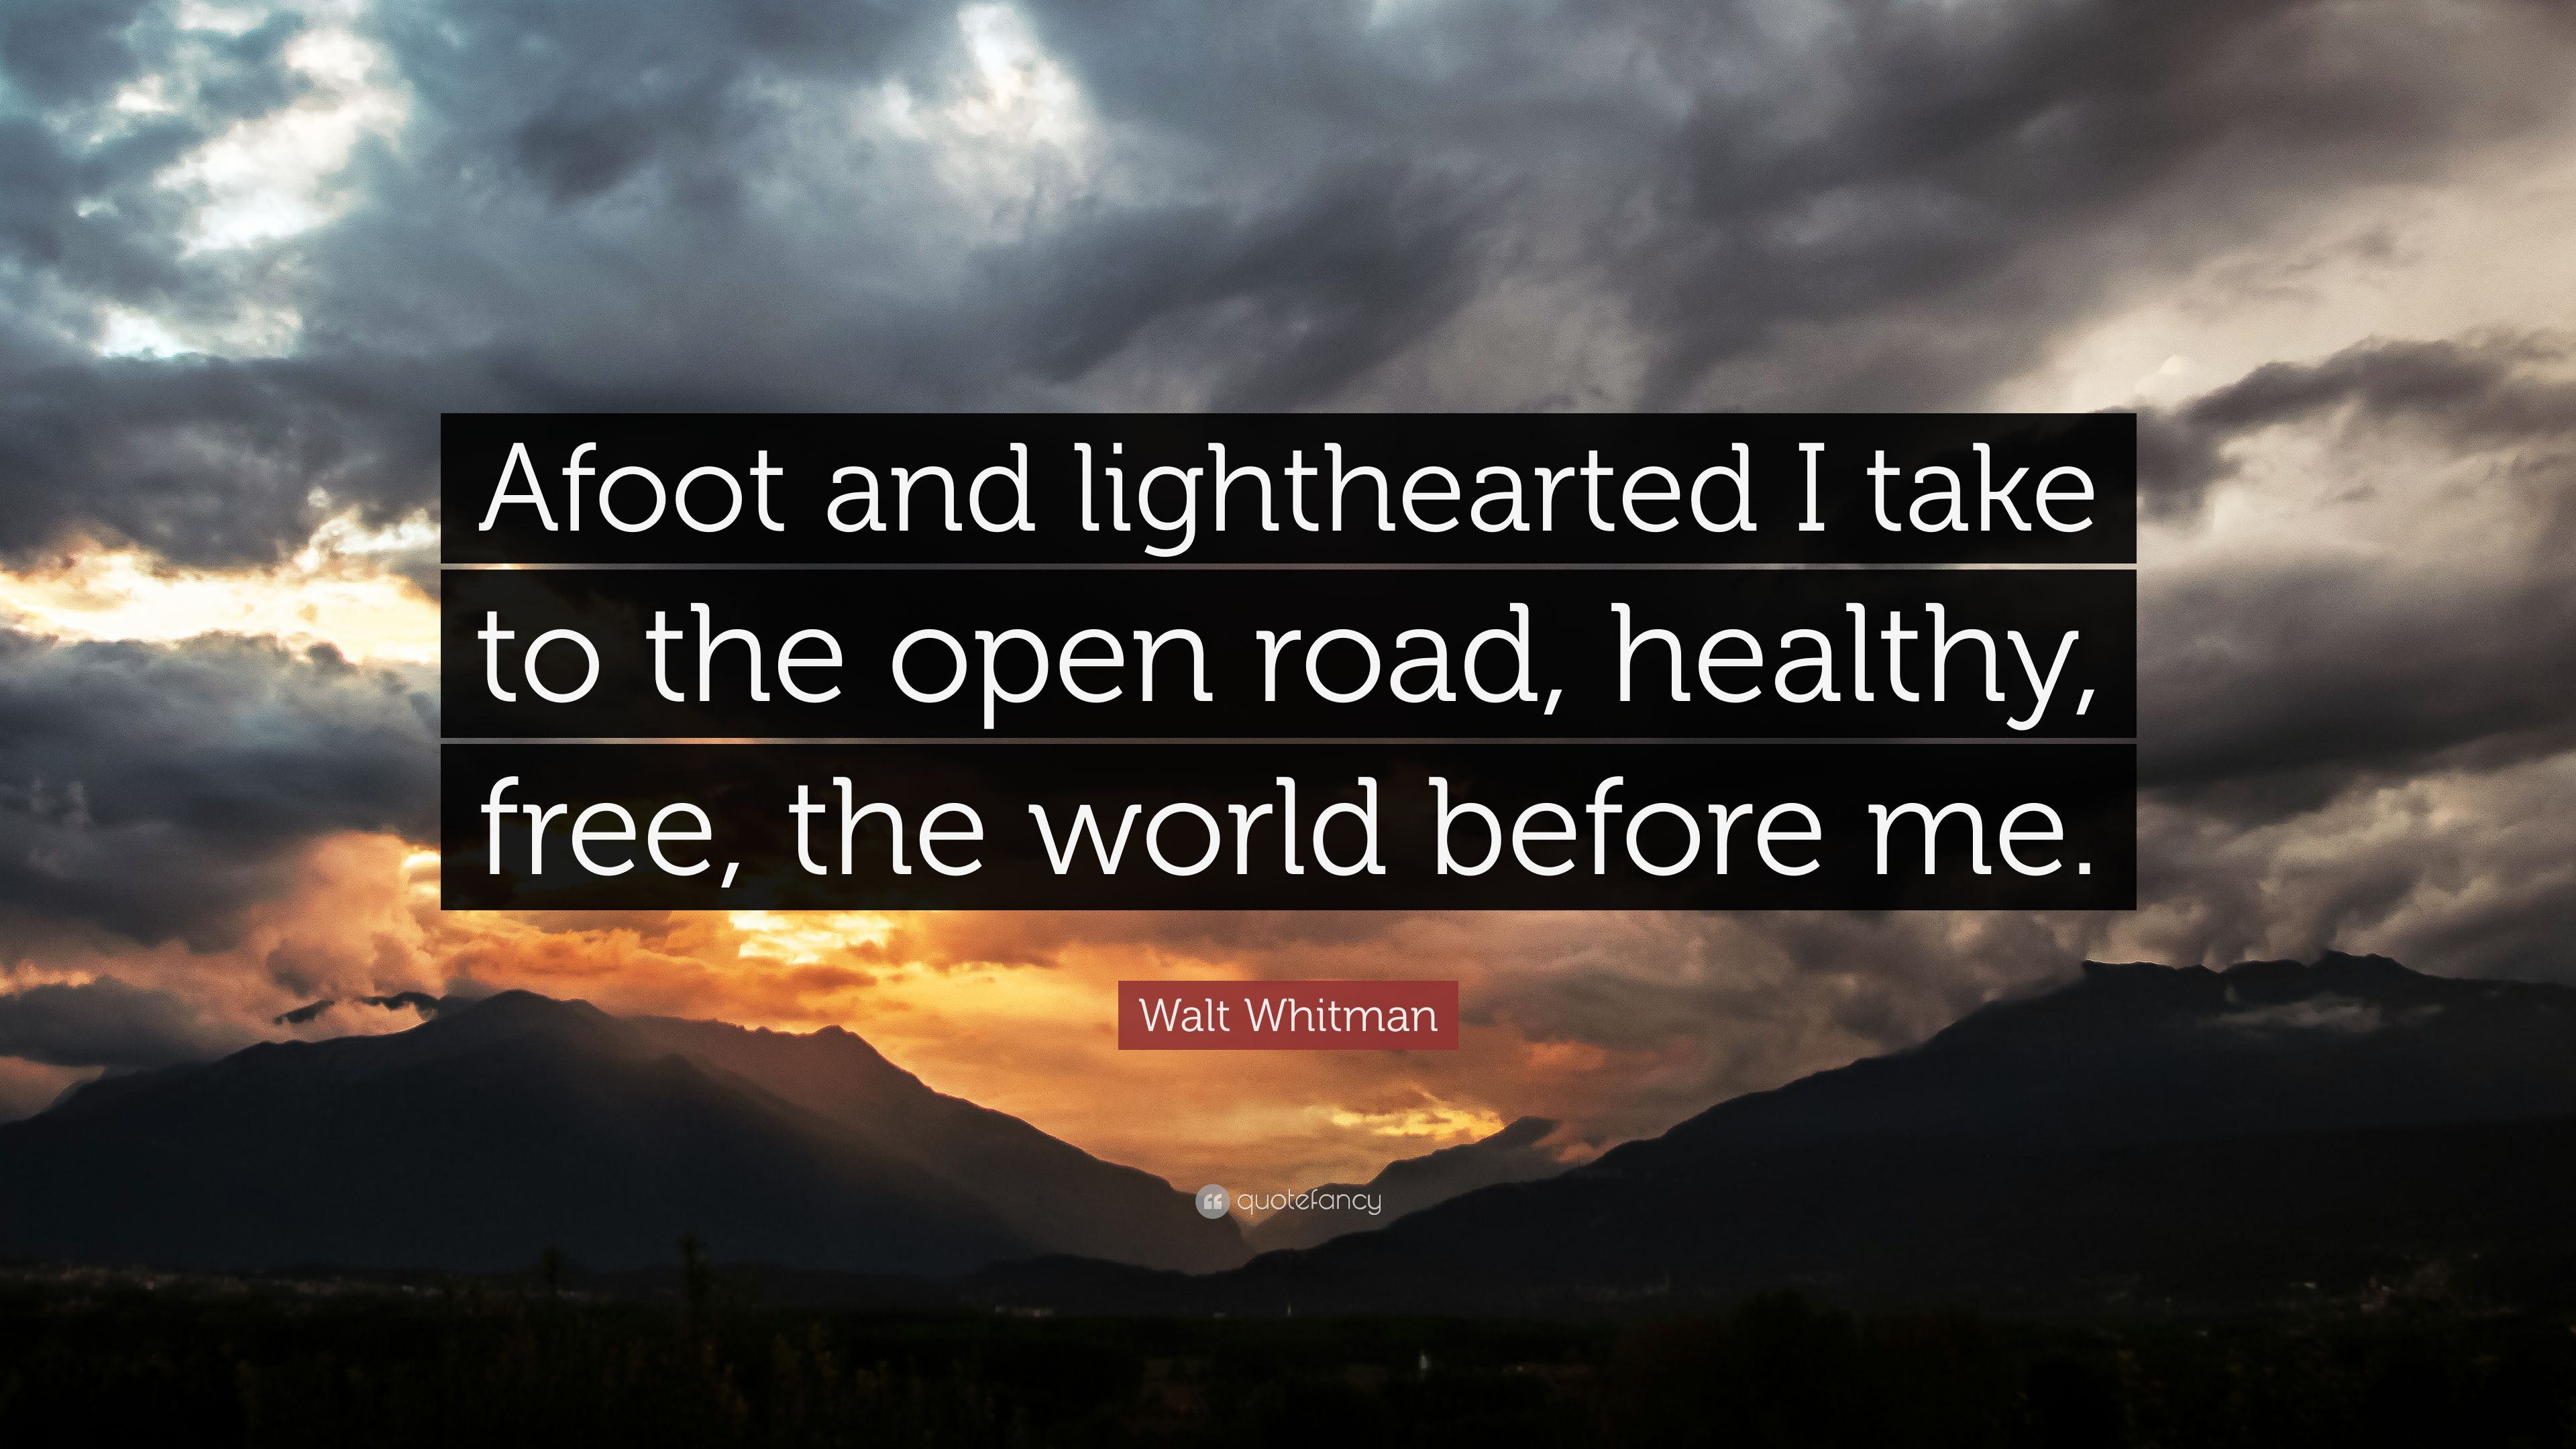 """Walt Whitman Quote """"Afoot and lighthearted I take to the open road healthy"""